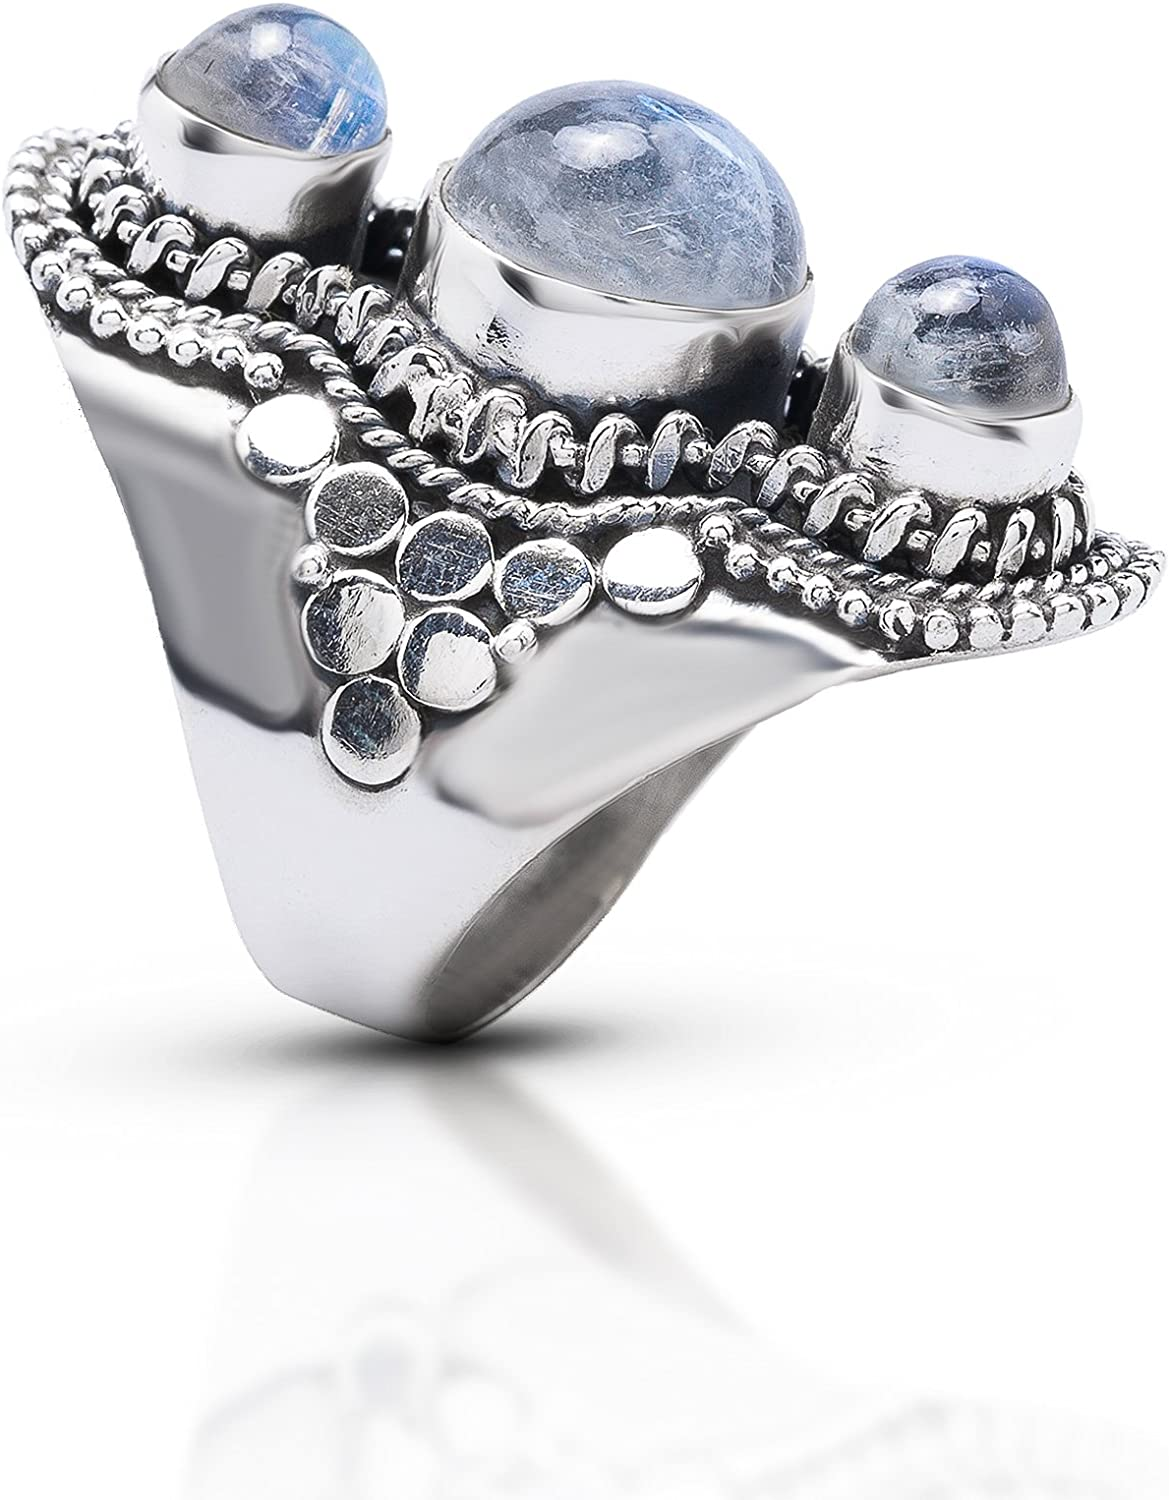 Moonstone At the price of surprise 3 Stones Cheap mail order sales Vintage Gipsy Ring US Siz 925 Sterling Silver